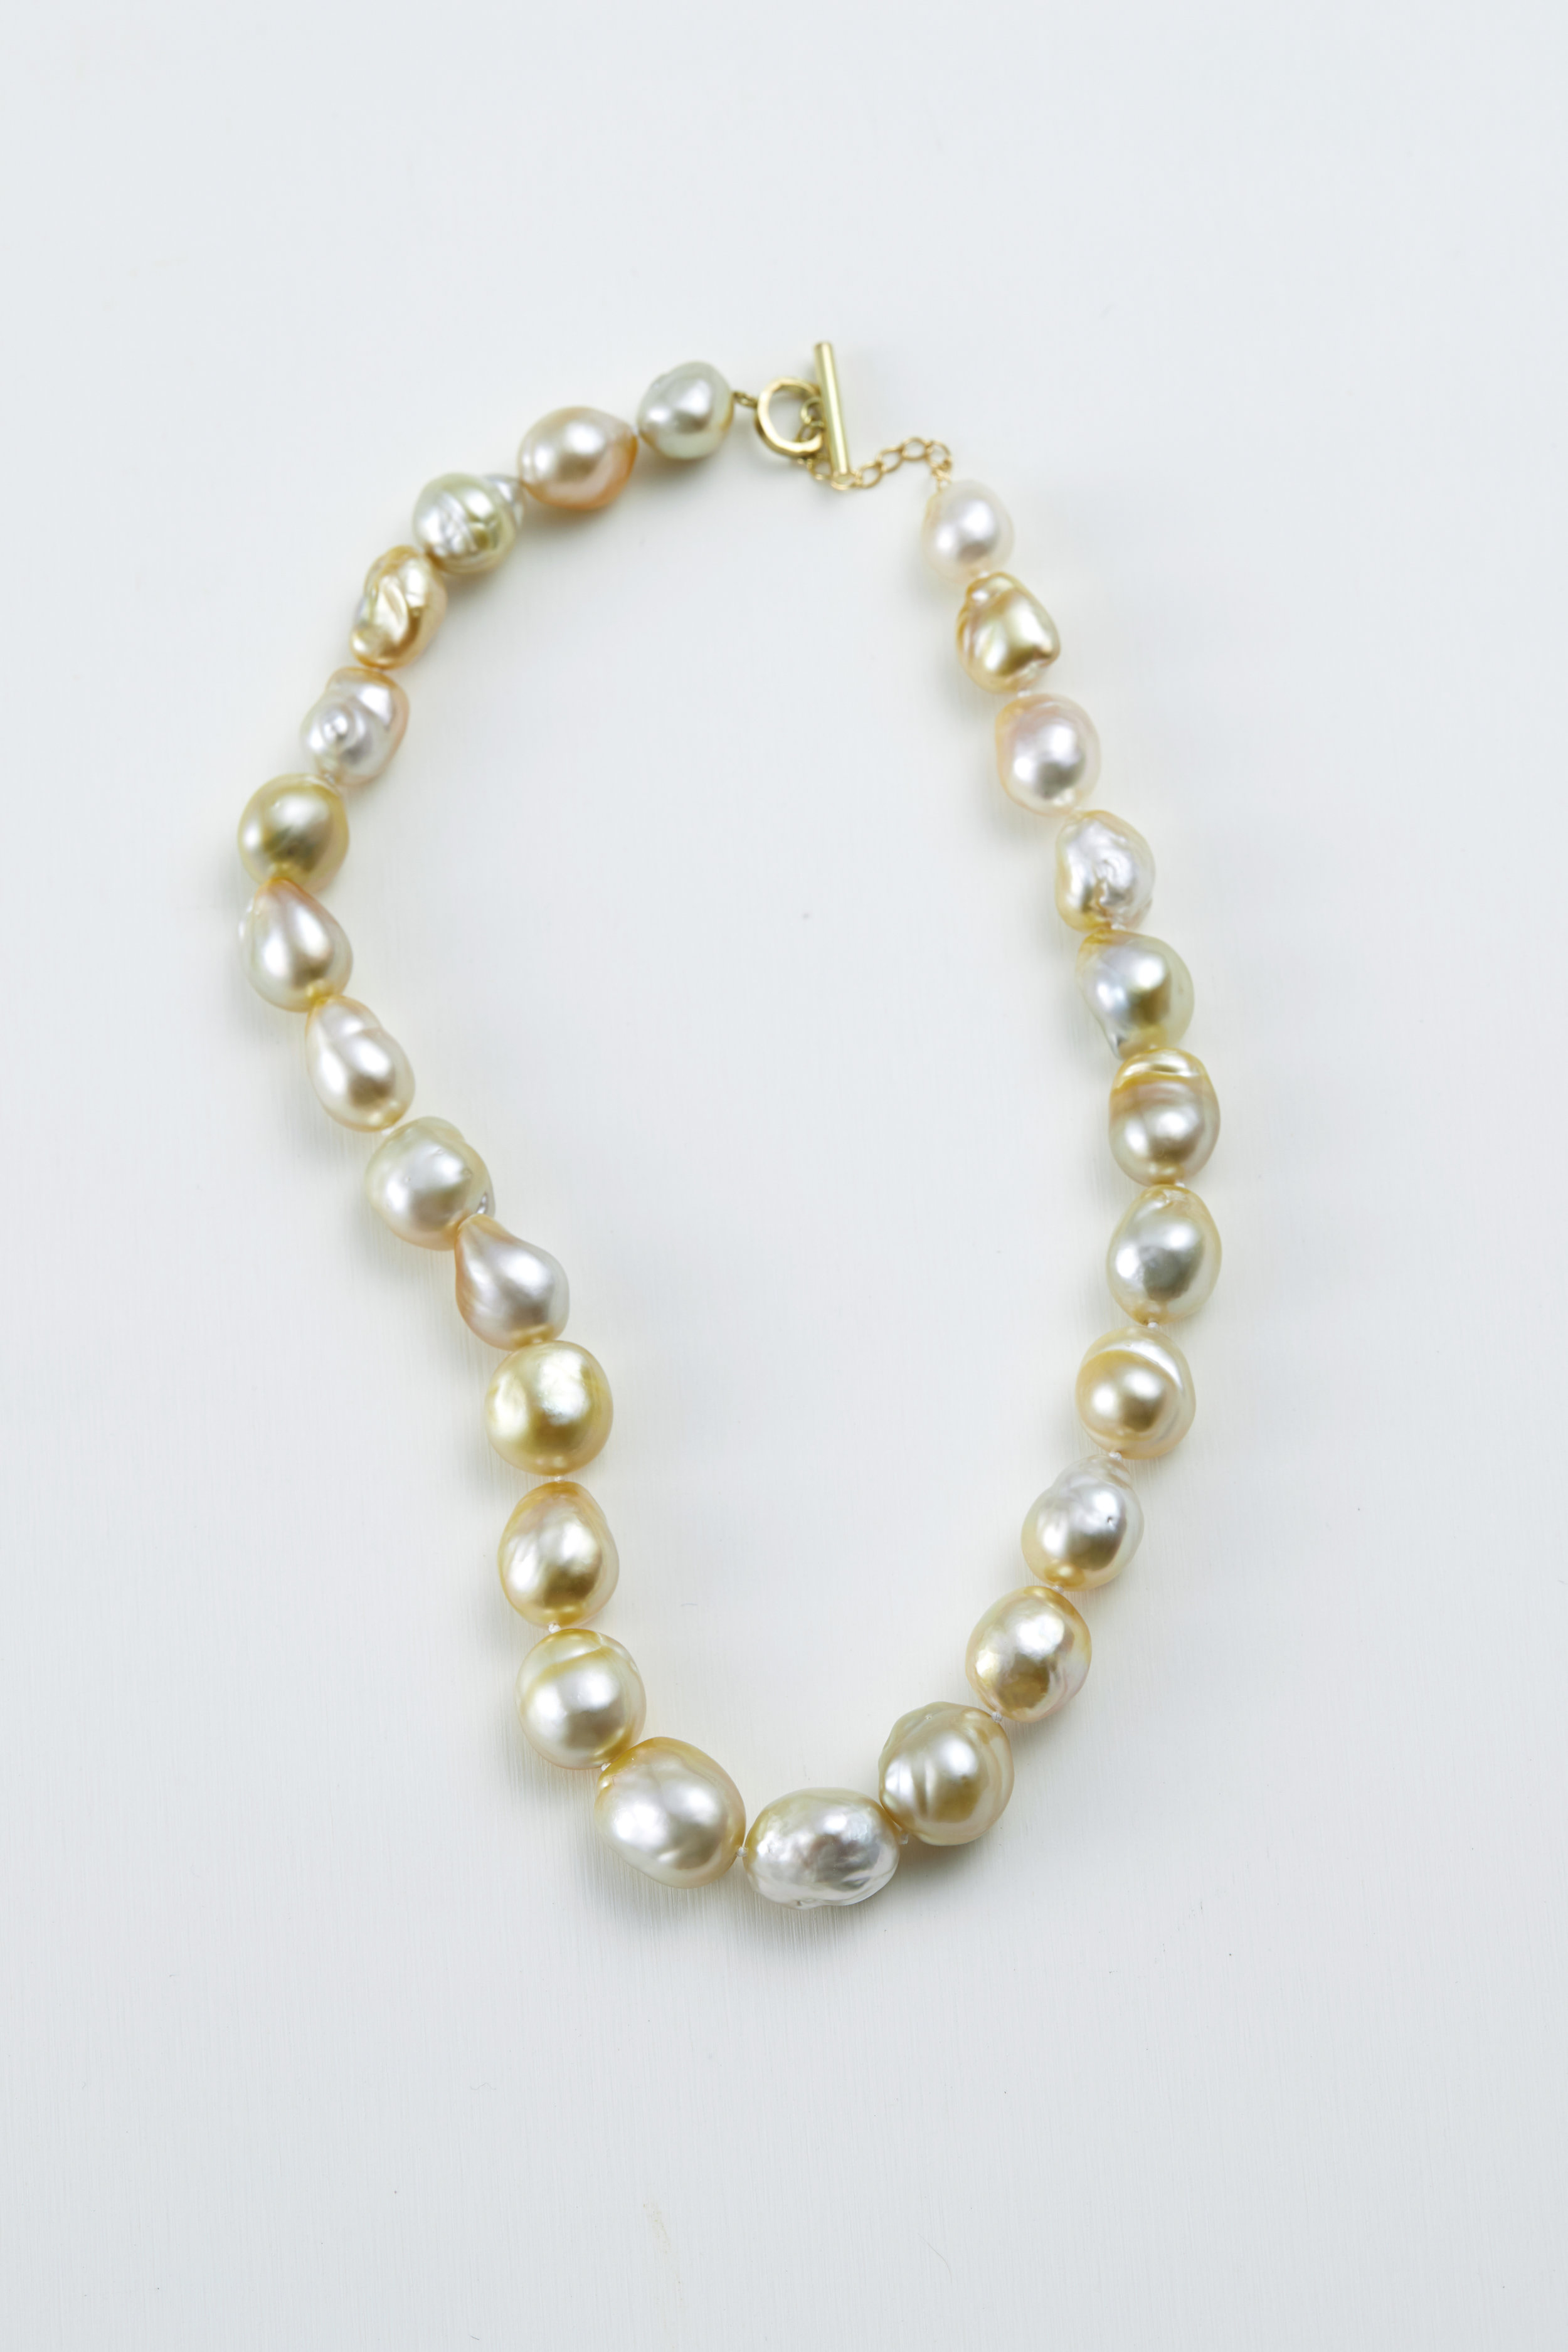 Baroque South sea pearl necklace/ gold, 18ct gold -N300100